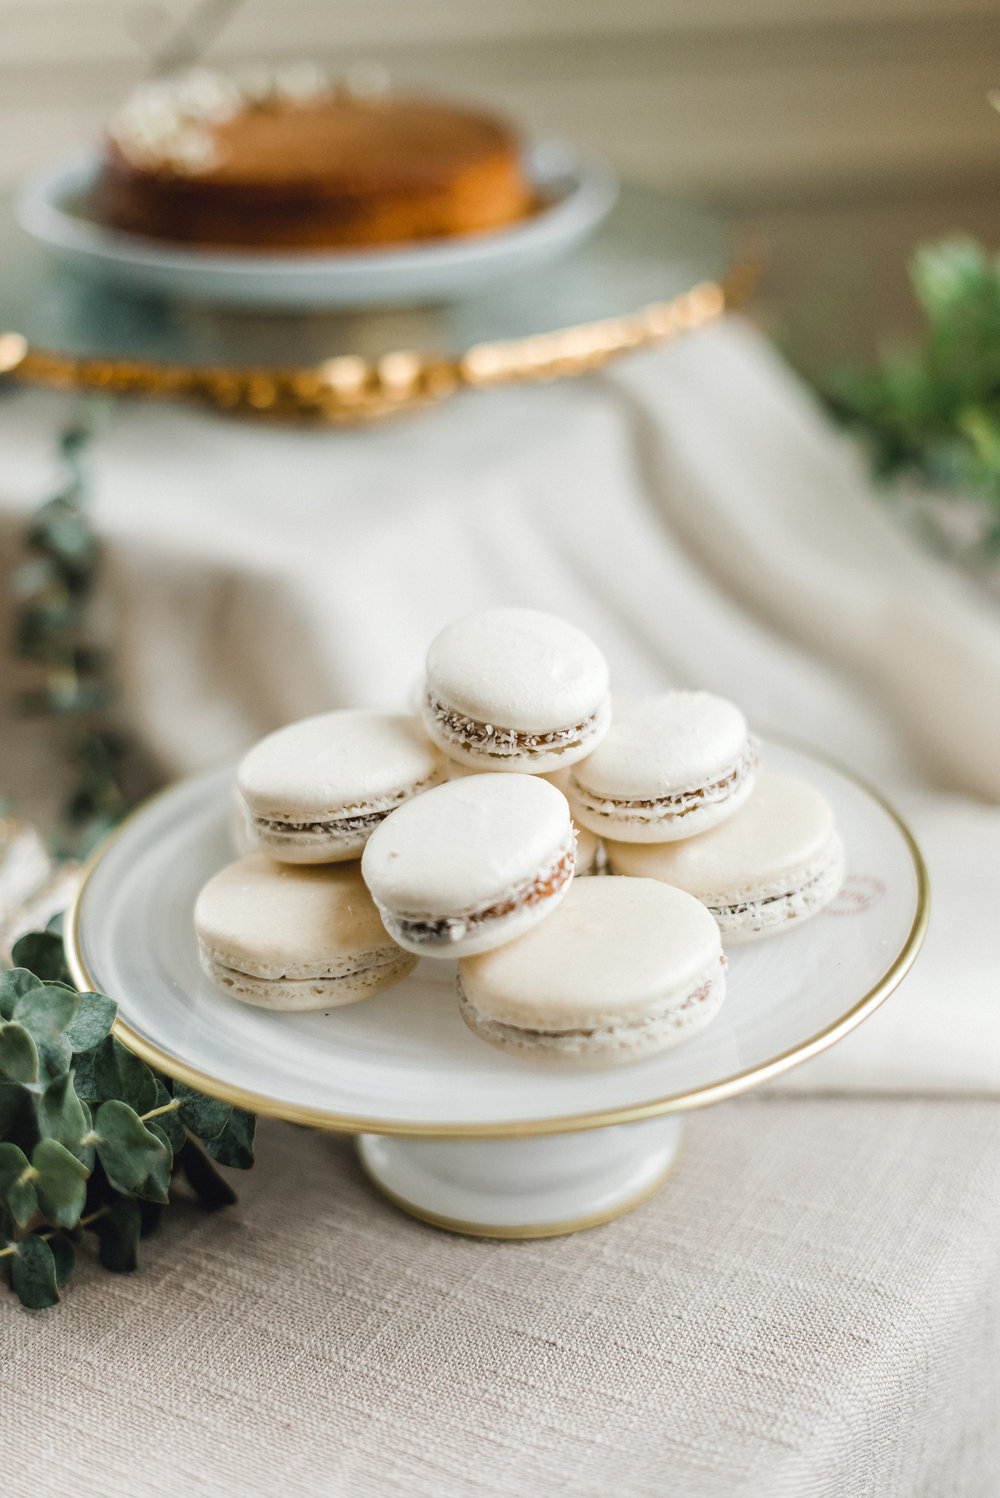 Charming wedding cake and dessert ideas for Pablo Neruda enchanting garden styled shoot planned by Exhale Events. Get inspired at exhale-events.com!